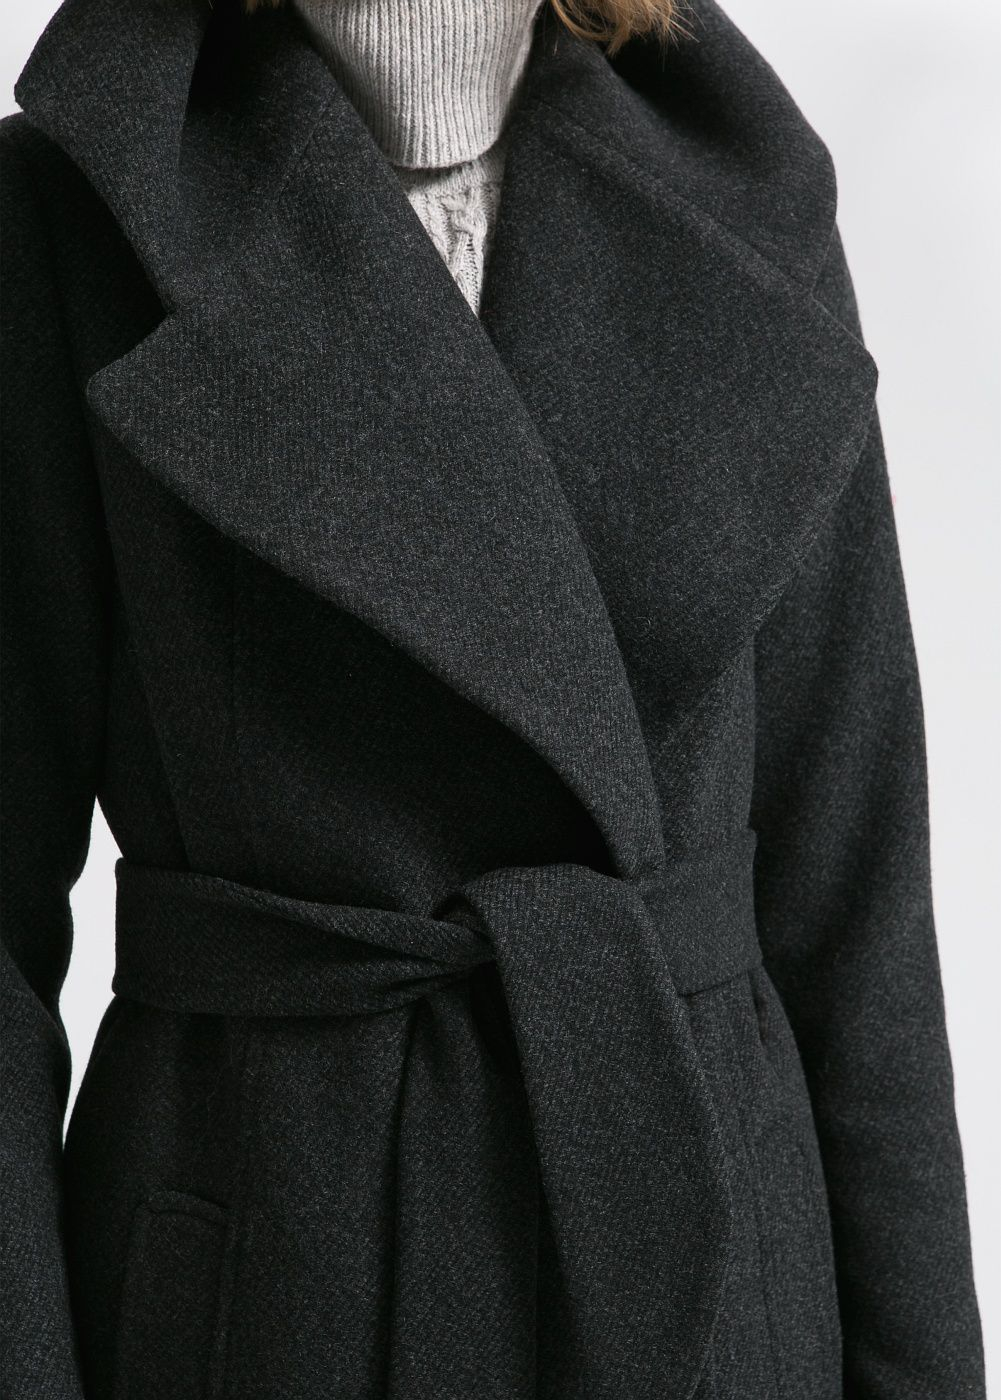 Mango Wide Lapel Wool Blend Coat in Black | Lyst